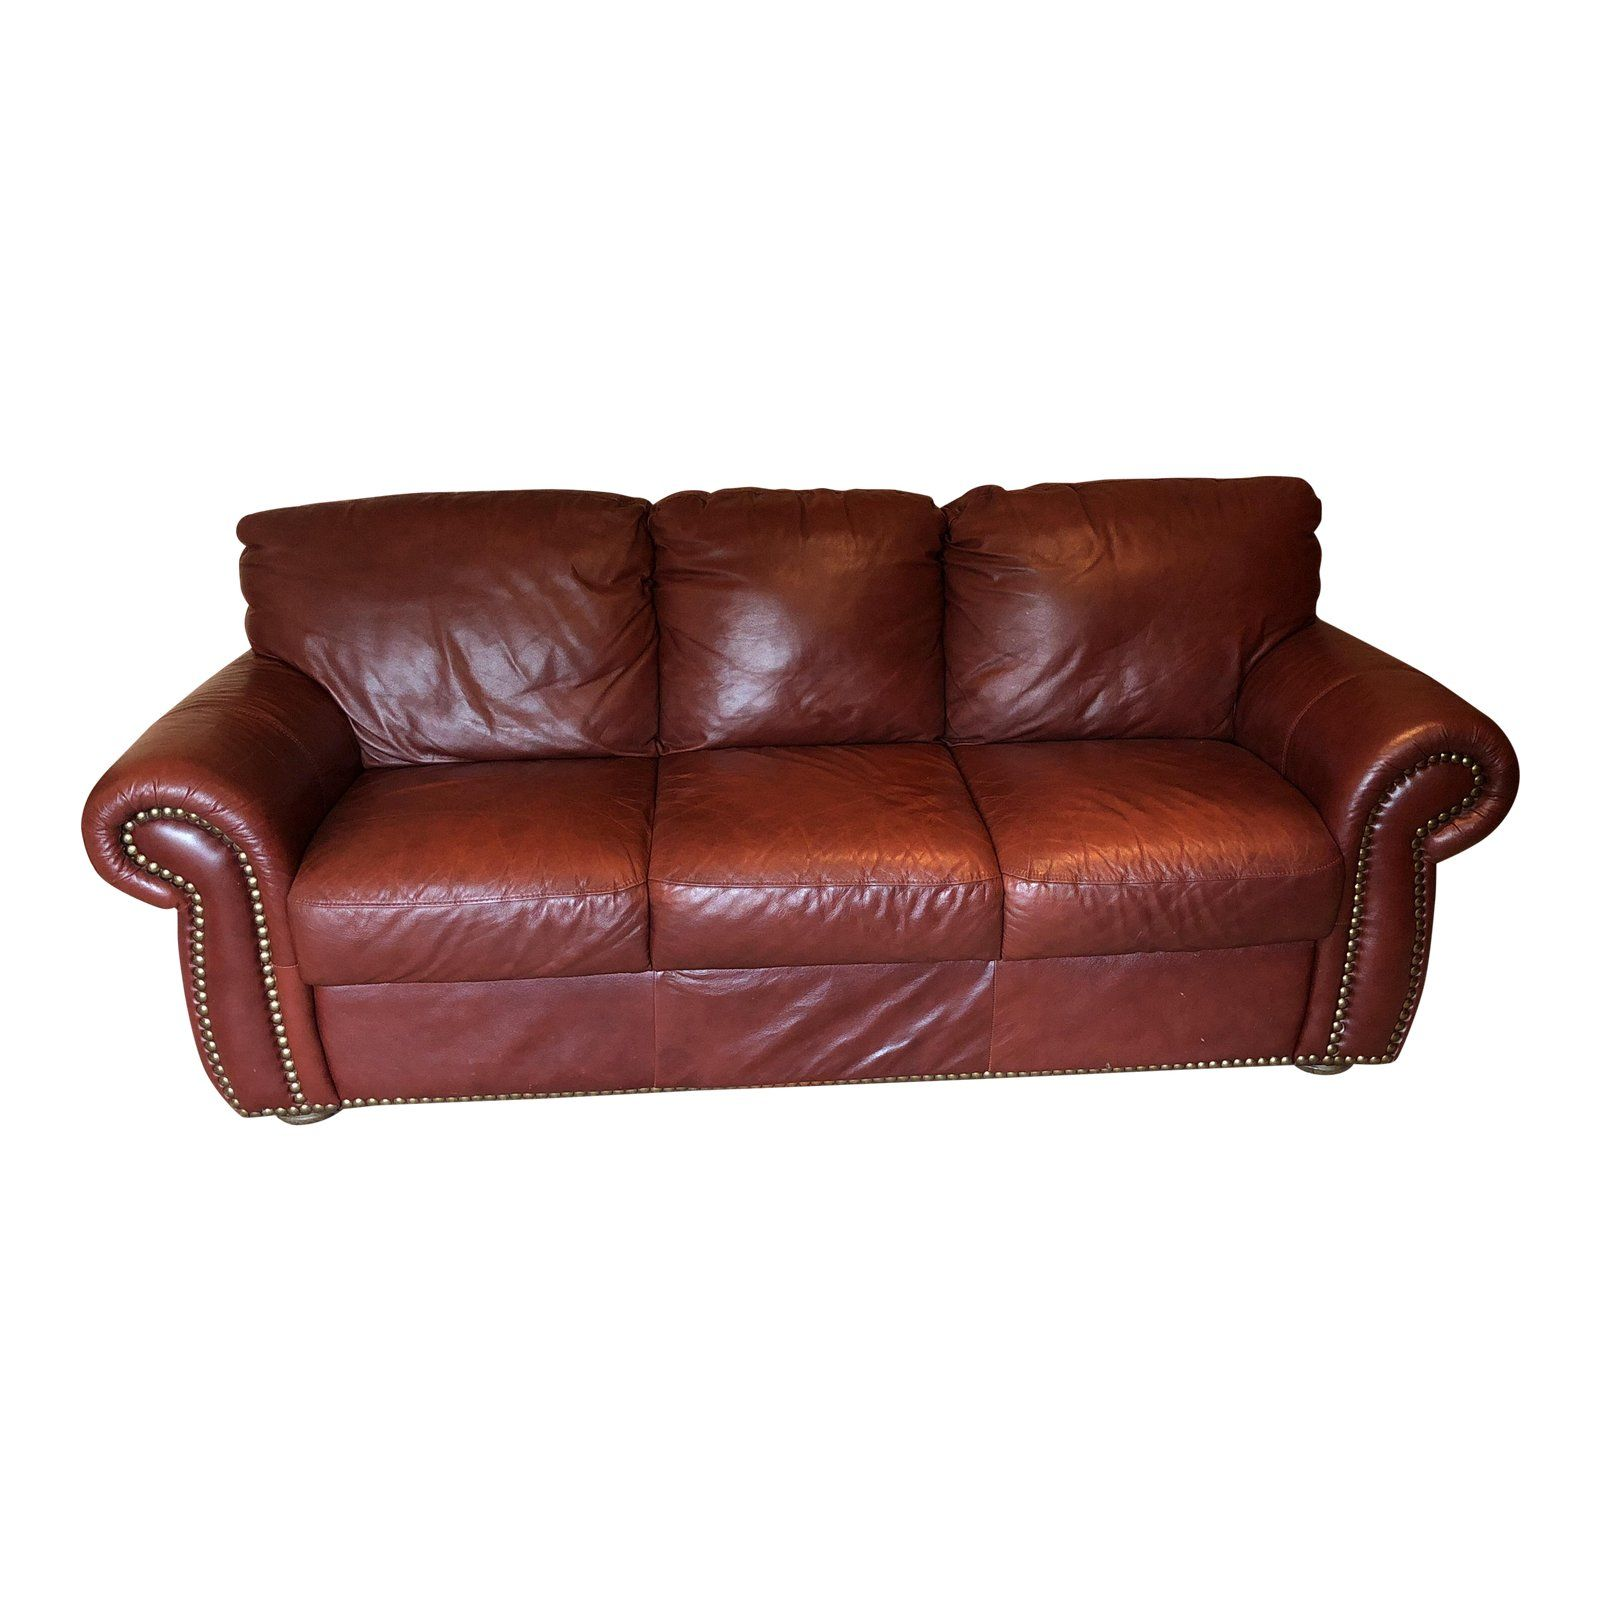 Chateau D Ax Divani Italian Red Leather Sofa Red Leather Sofa Leather Sofa Chateau D Ax